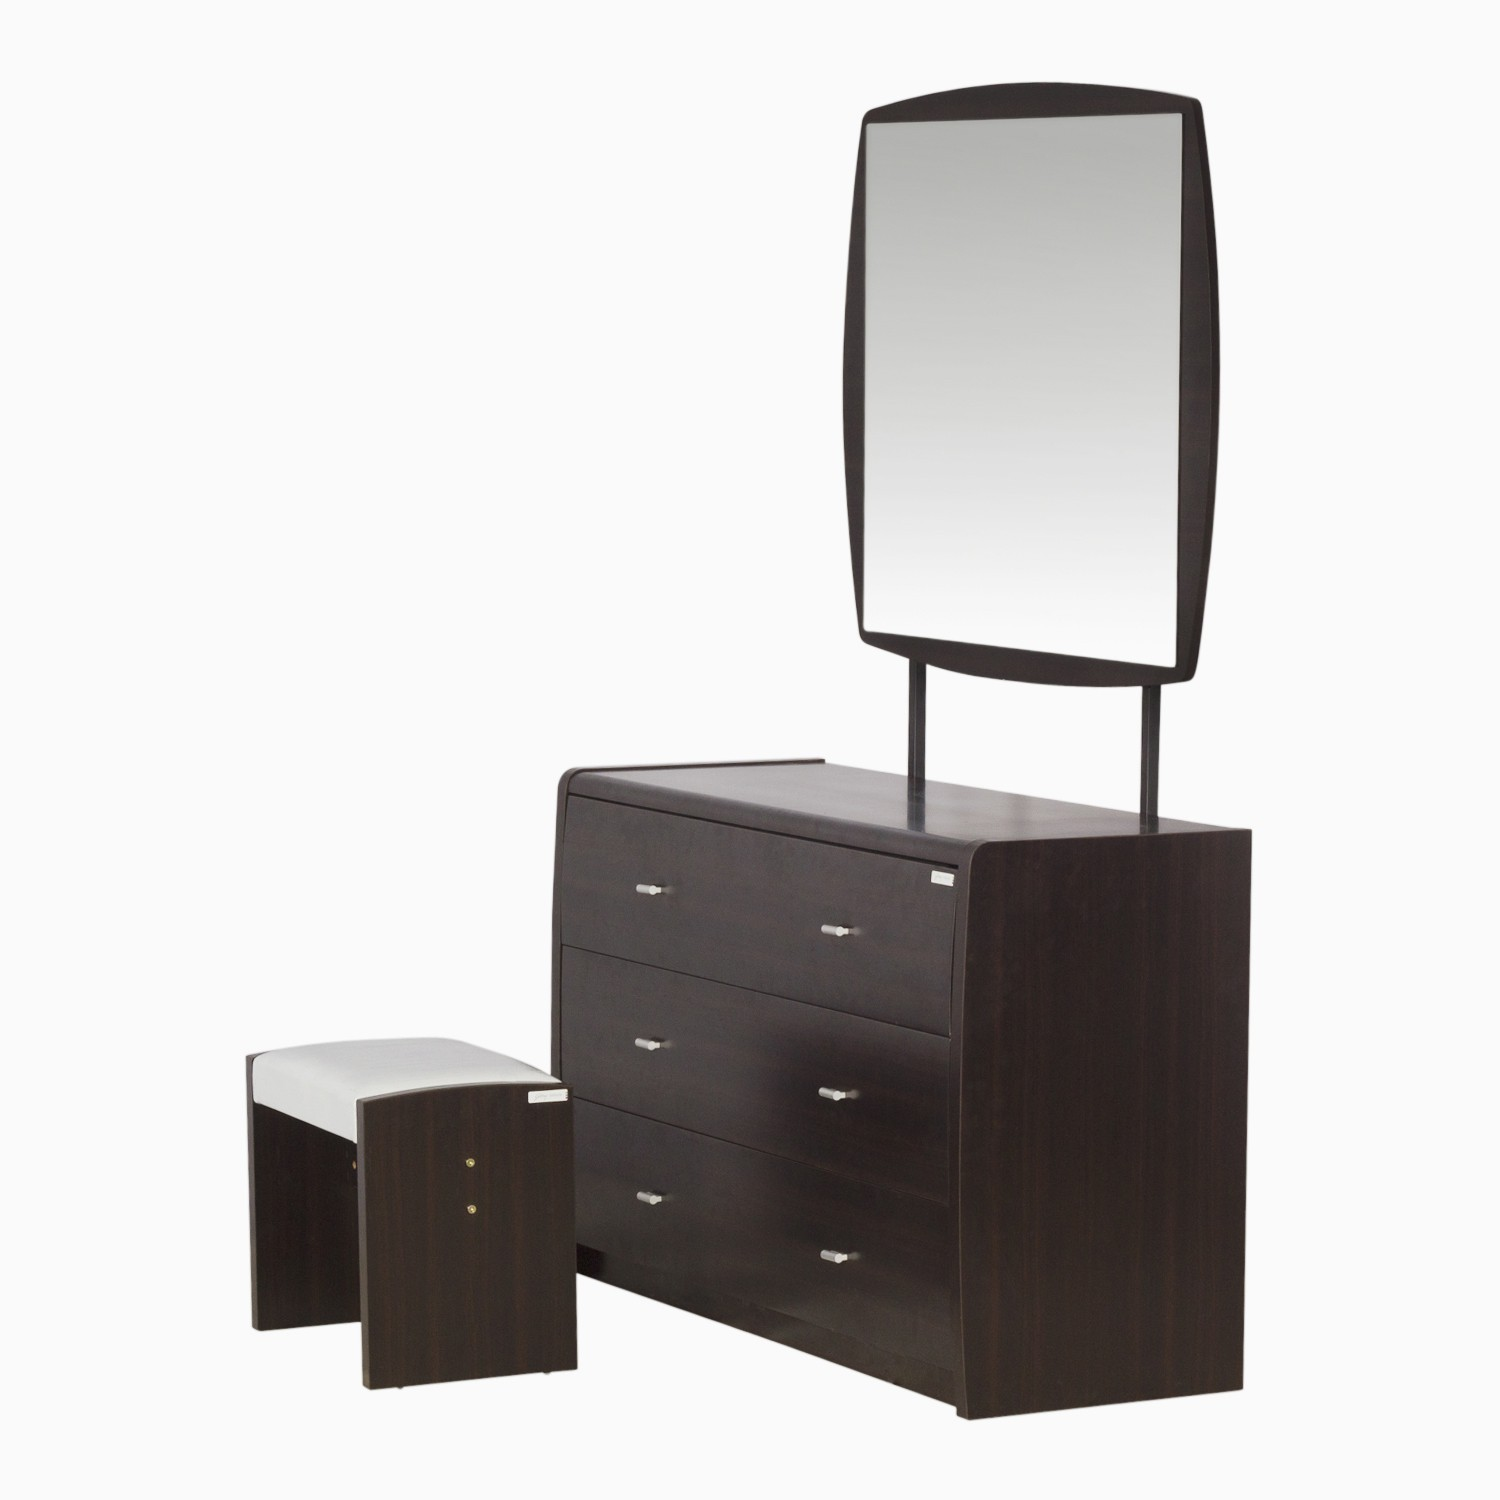 Godrej interio super magna drsng tbl stool engineered wood dressing table price in india Godrej interio home furniture price list